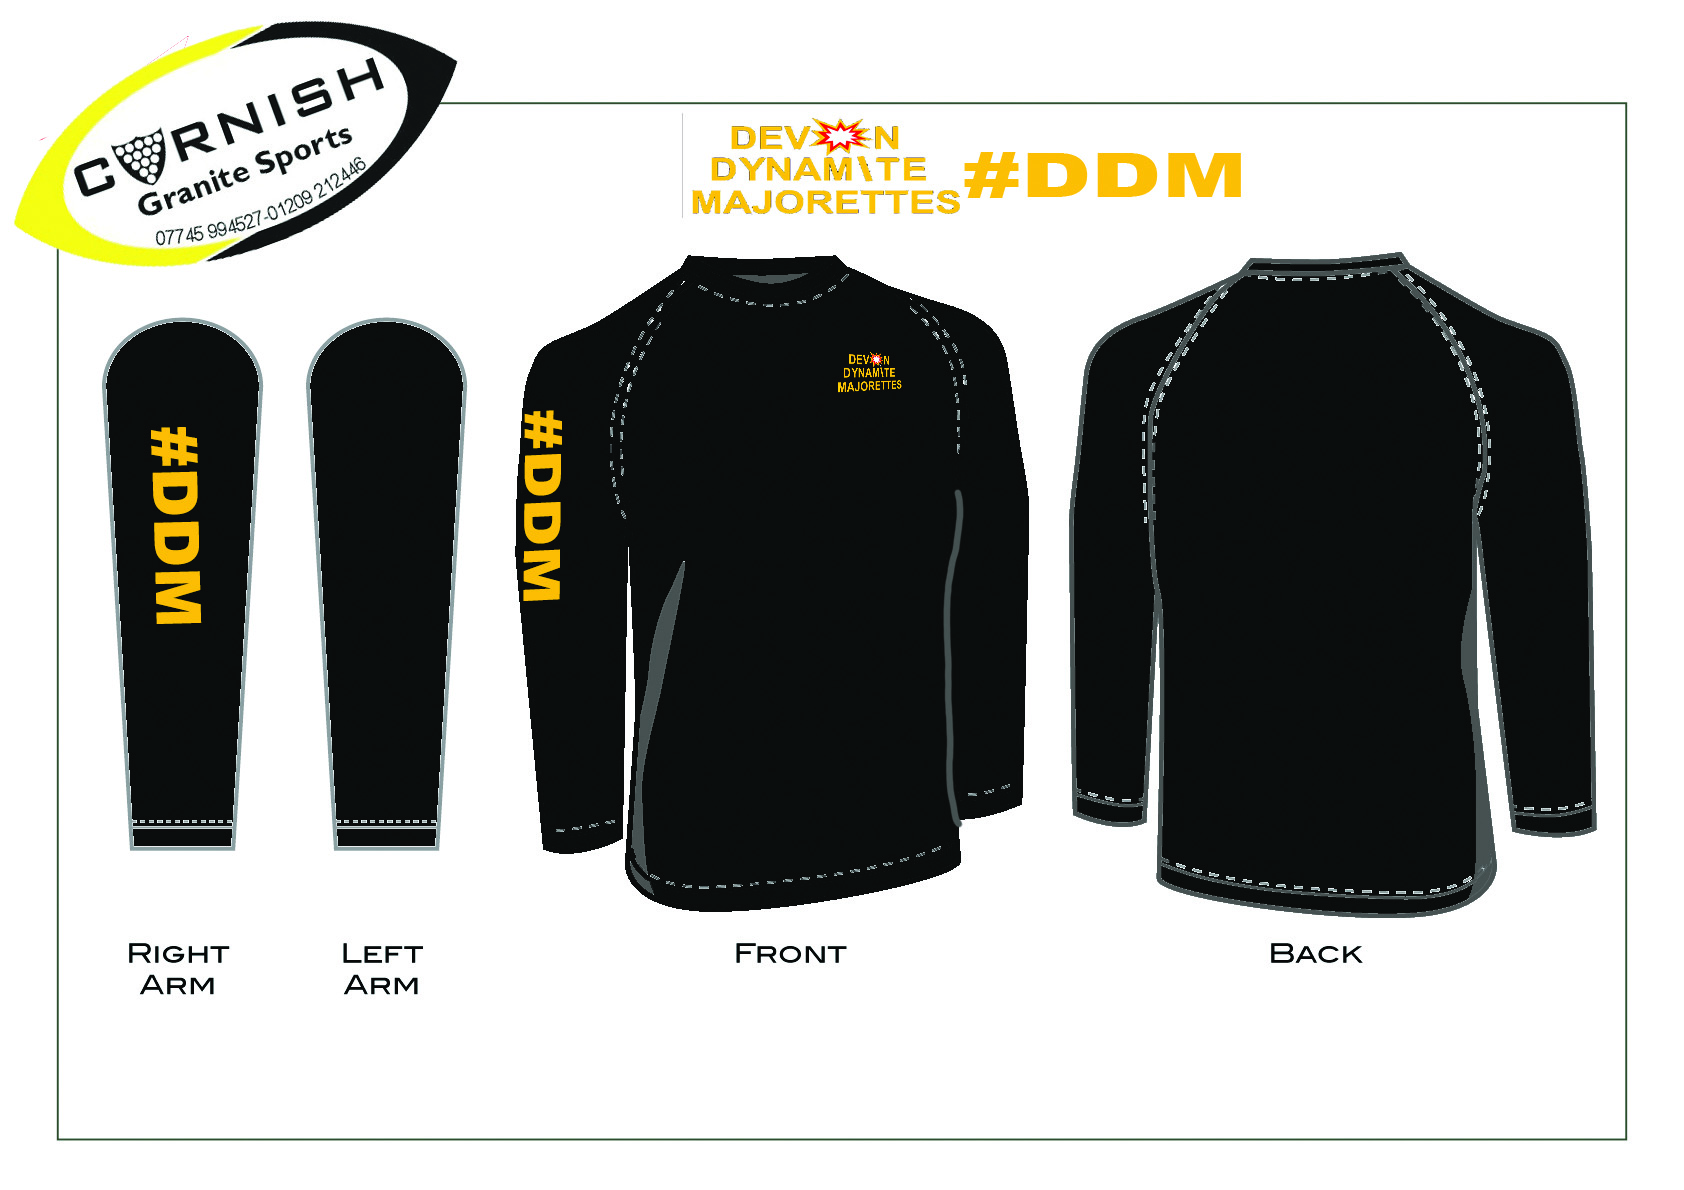 #DDM Long sleeve tee